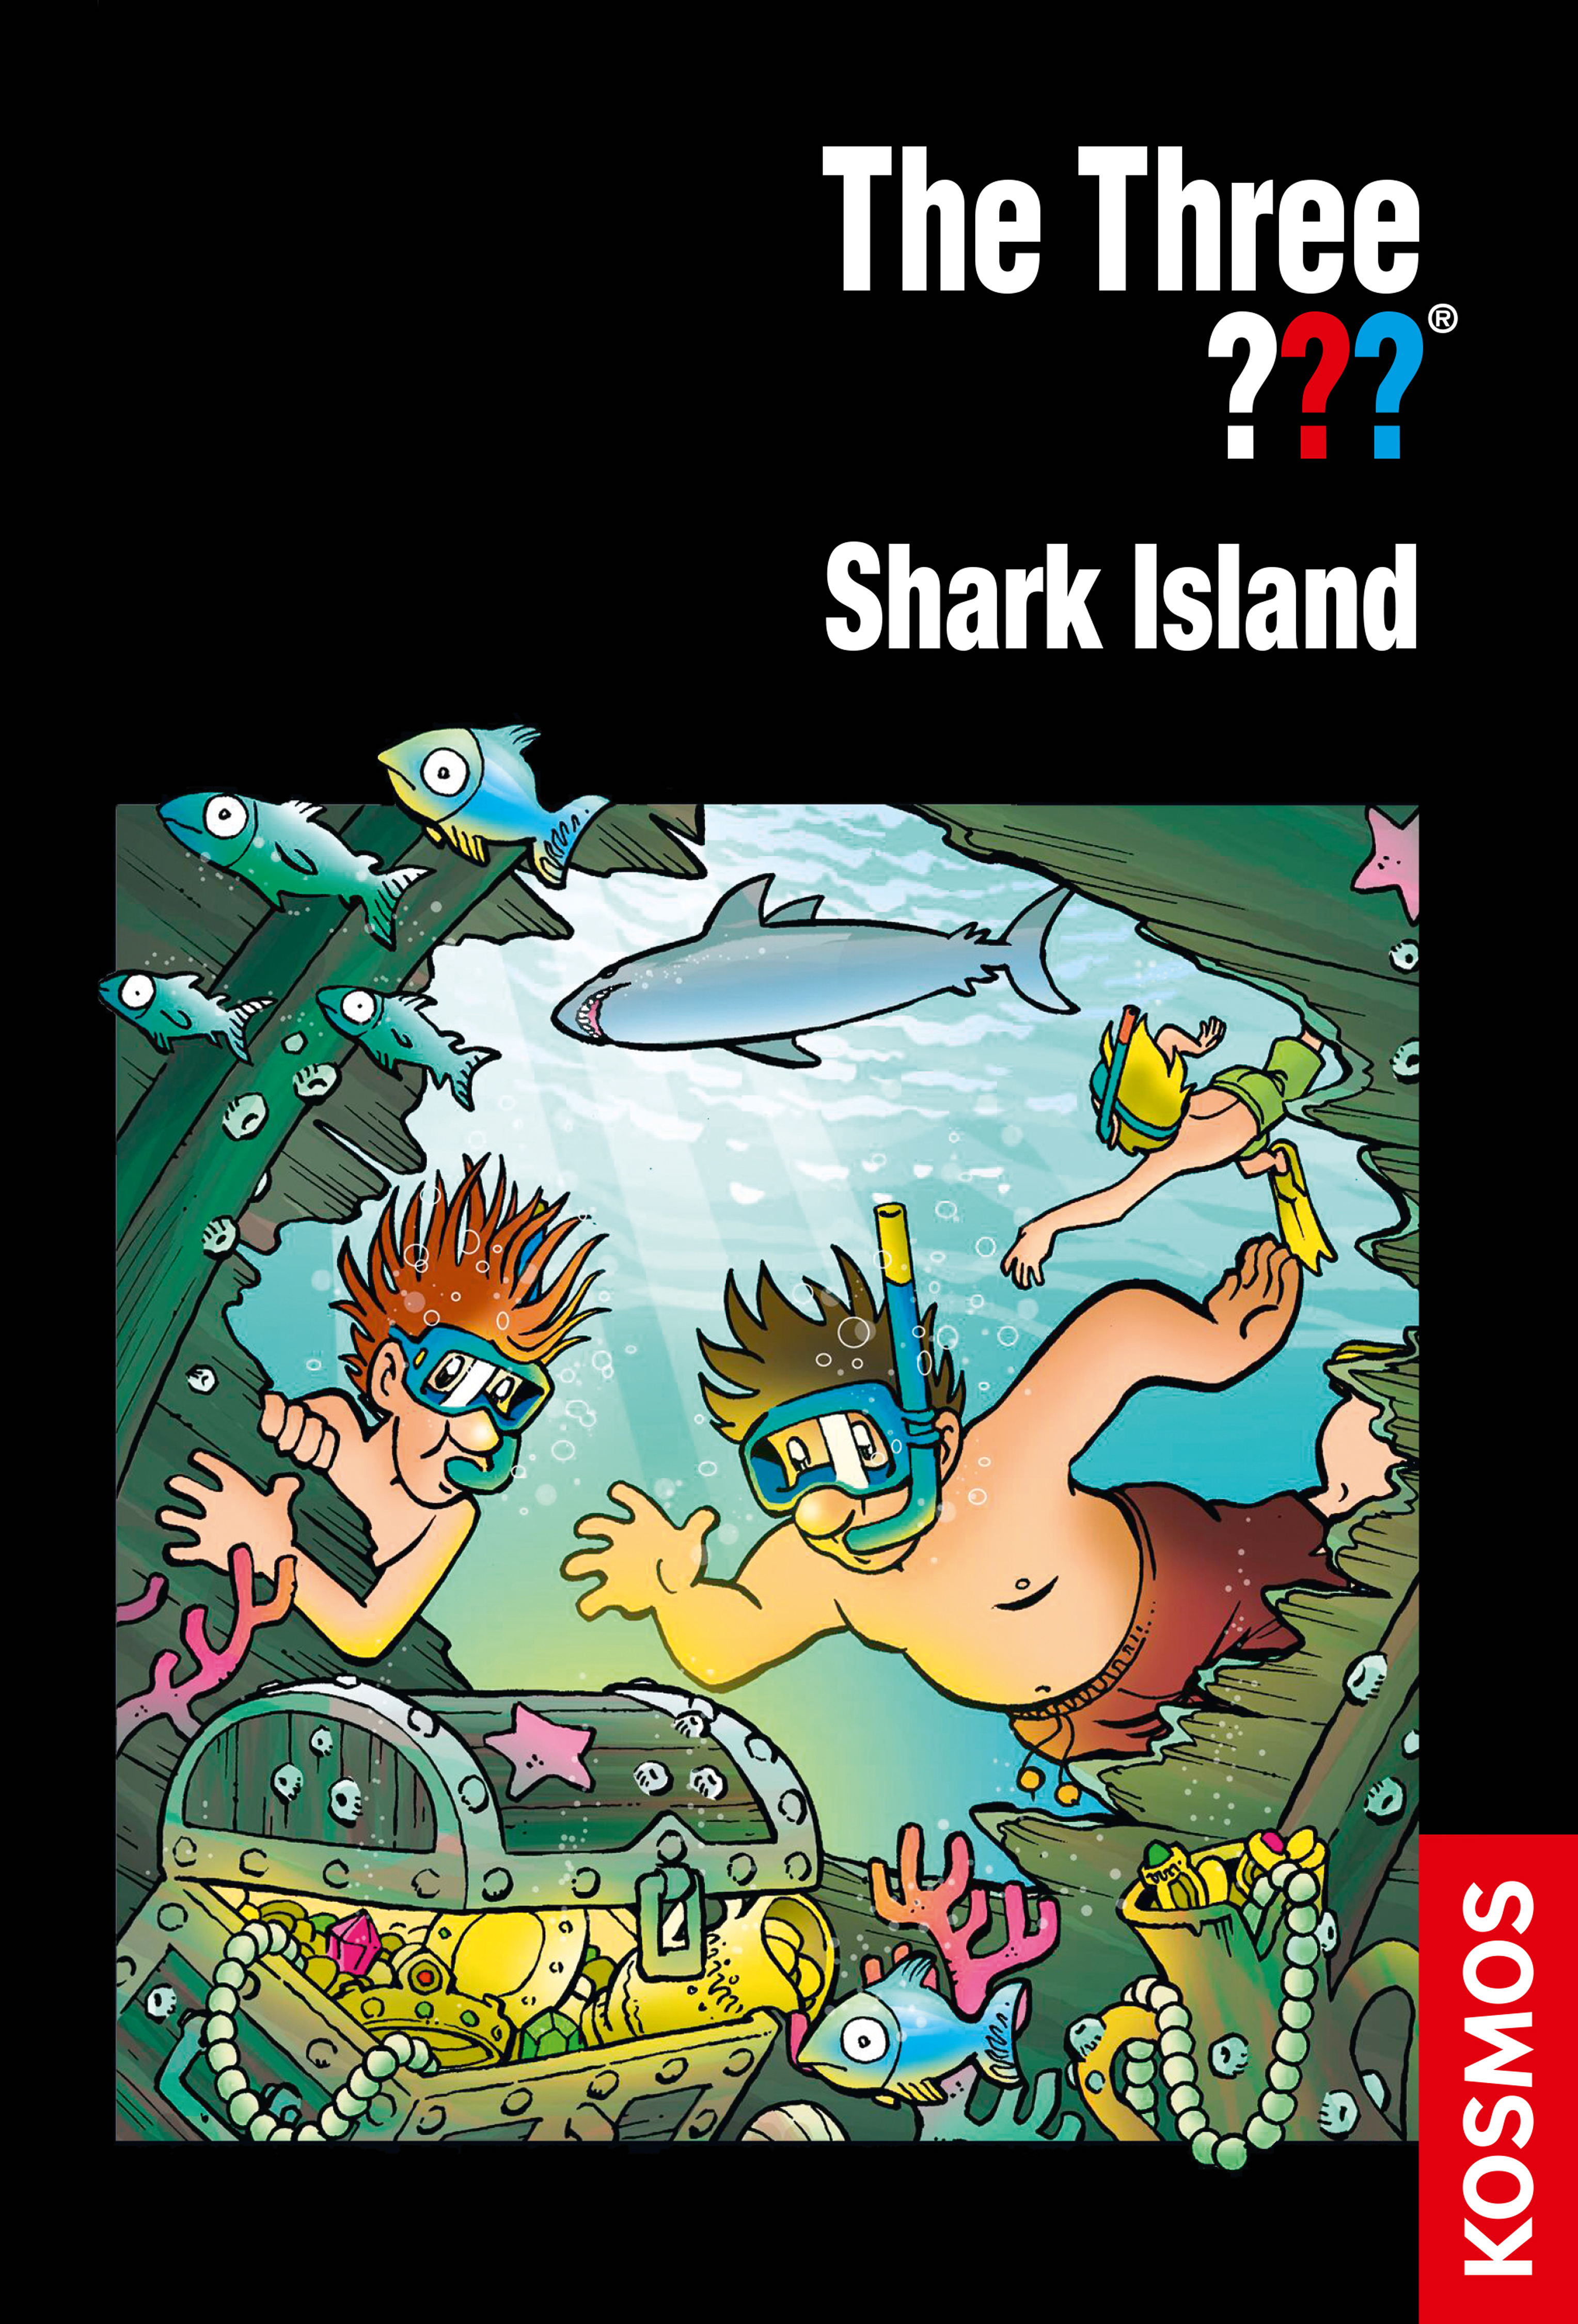 Die - The Three ???, Shark Island